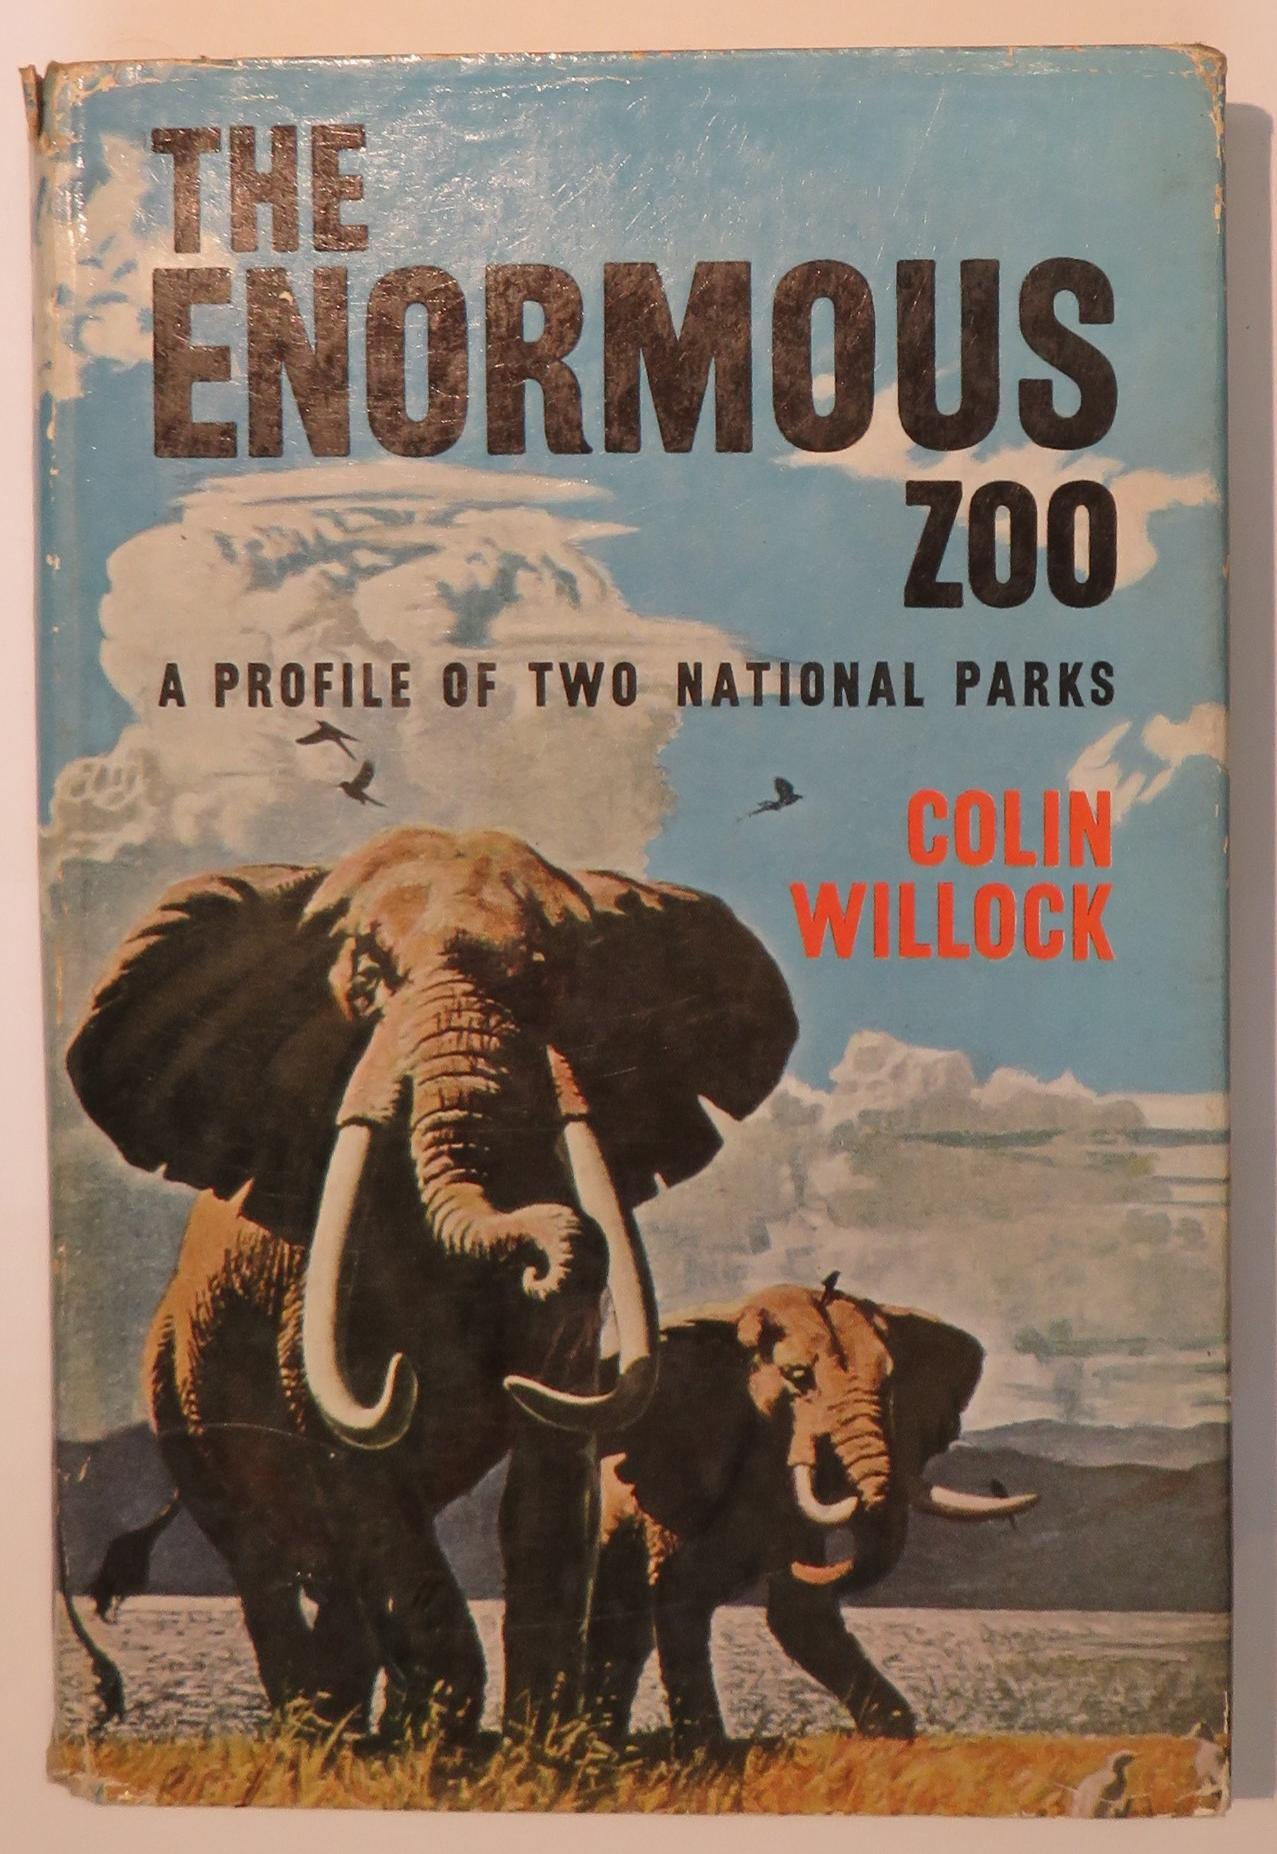 The Enormous Zoo